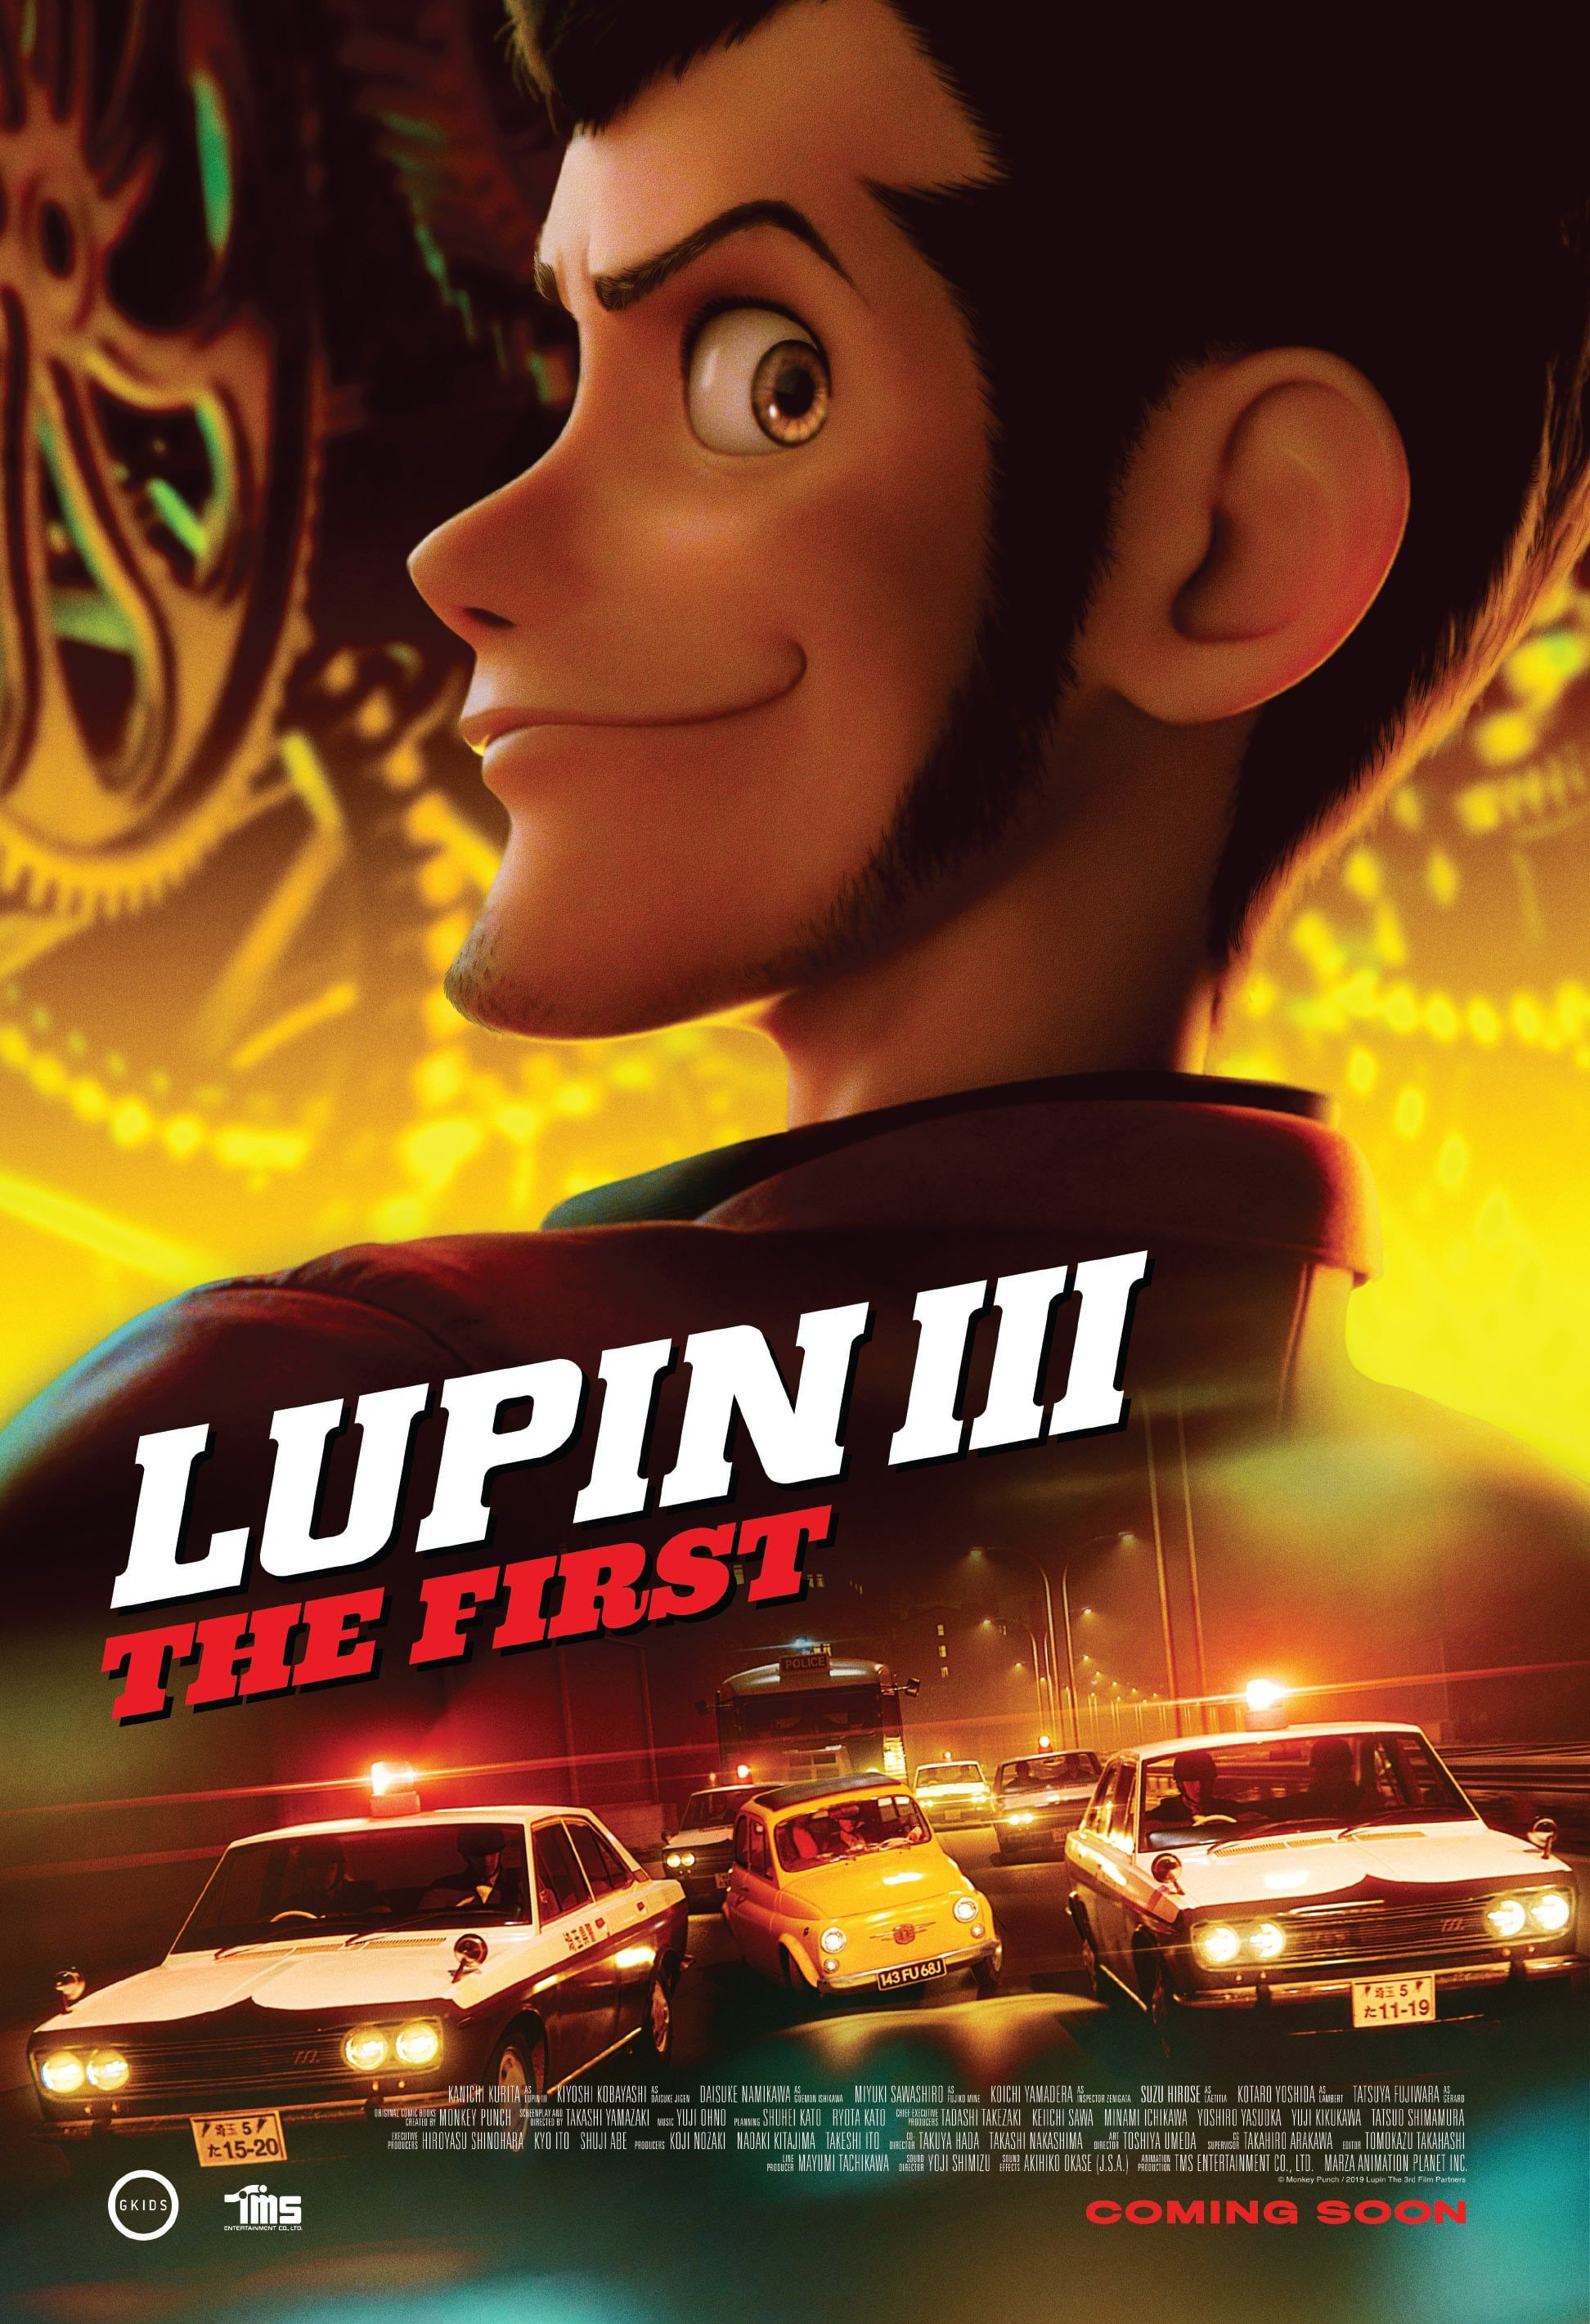 Film D'animation Streaming Vf : d'animation, streaming, ReGarder», Lupin, First, (2020), Complet, Streaming, VOSTFR, Anime, Films,